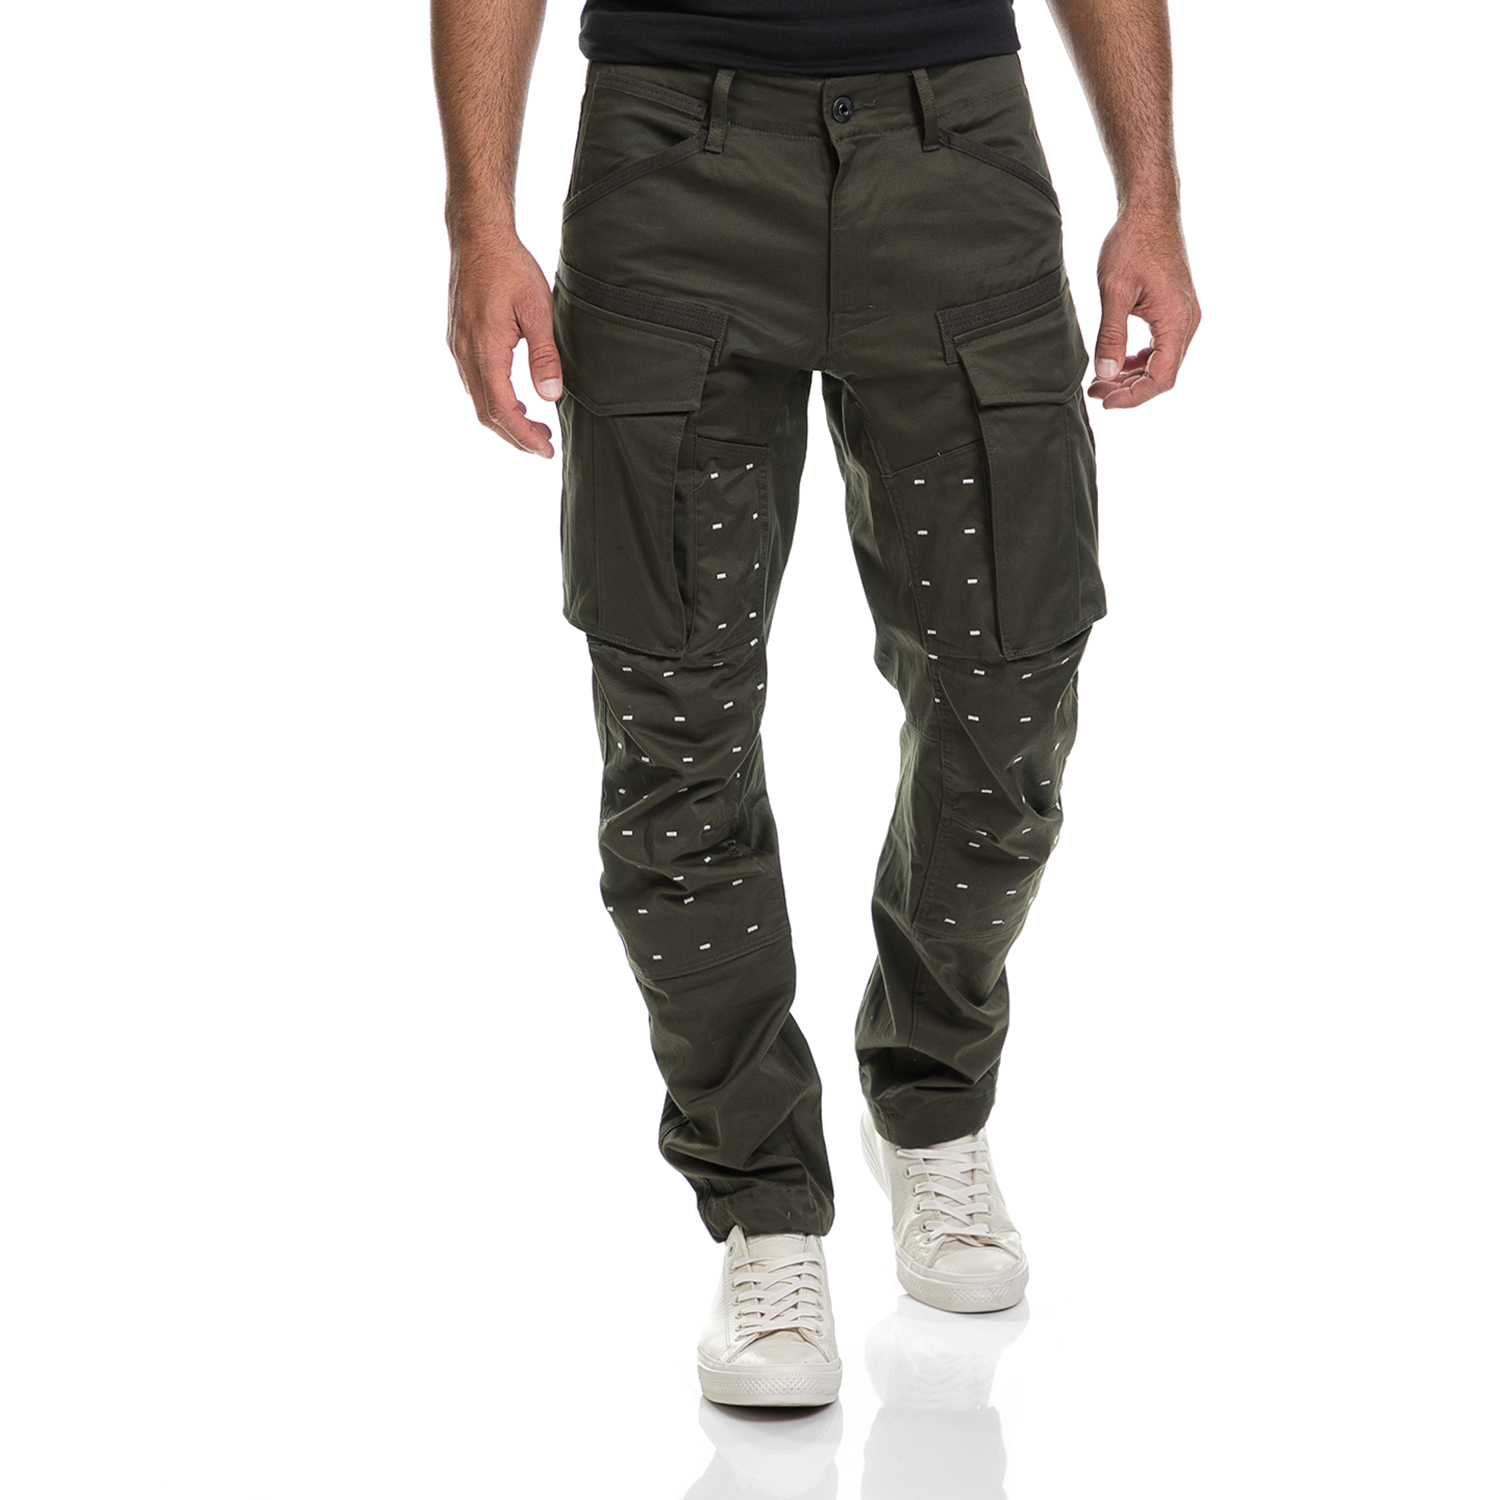 G-STAR - Ανδρικό παντελόνι Rovic 3D tapered G-STAR RAW χακί ανδρικά ρούχα παντελόνια cargo